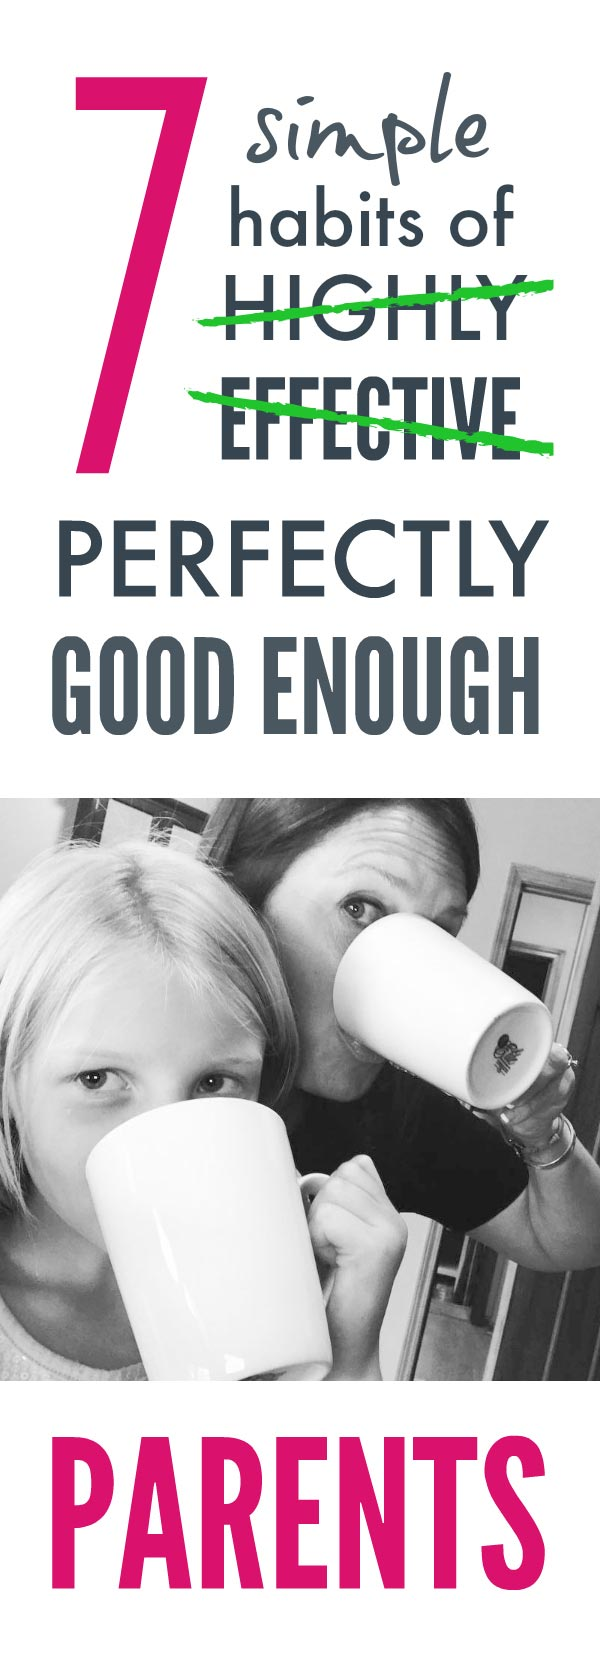 7 habits of perfectly good enough parents BECAUSE that's all we can ever hope to be ... #parenting #habits #parentinghabits